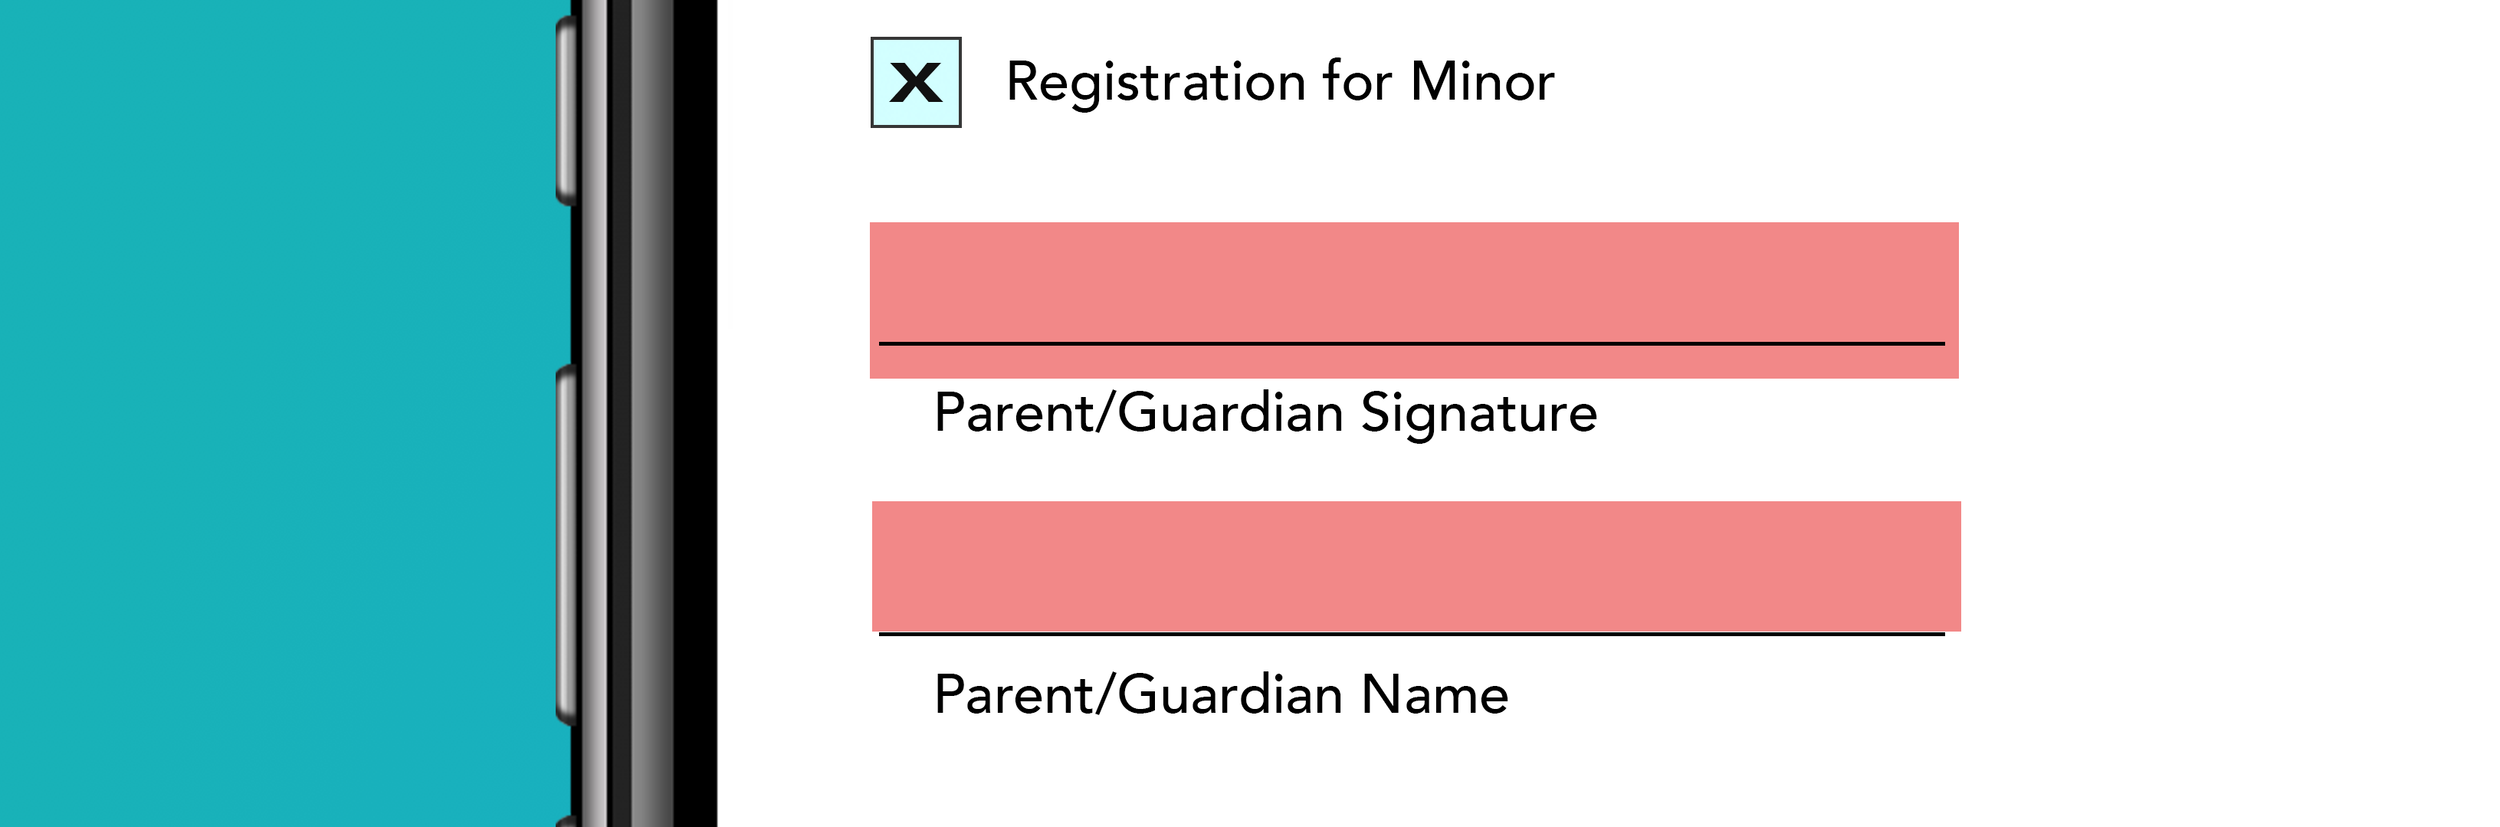 Using DFPs form fields can be made required in response to entered data. Here we see an example of an event registration form being filled out on an iPhone, and parent/guardian fields being made Required in response to a checkbox selection noting the registrant is a minor.